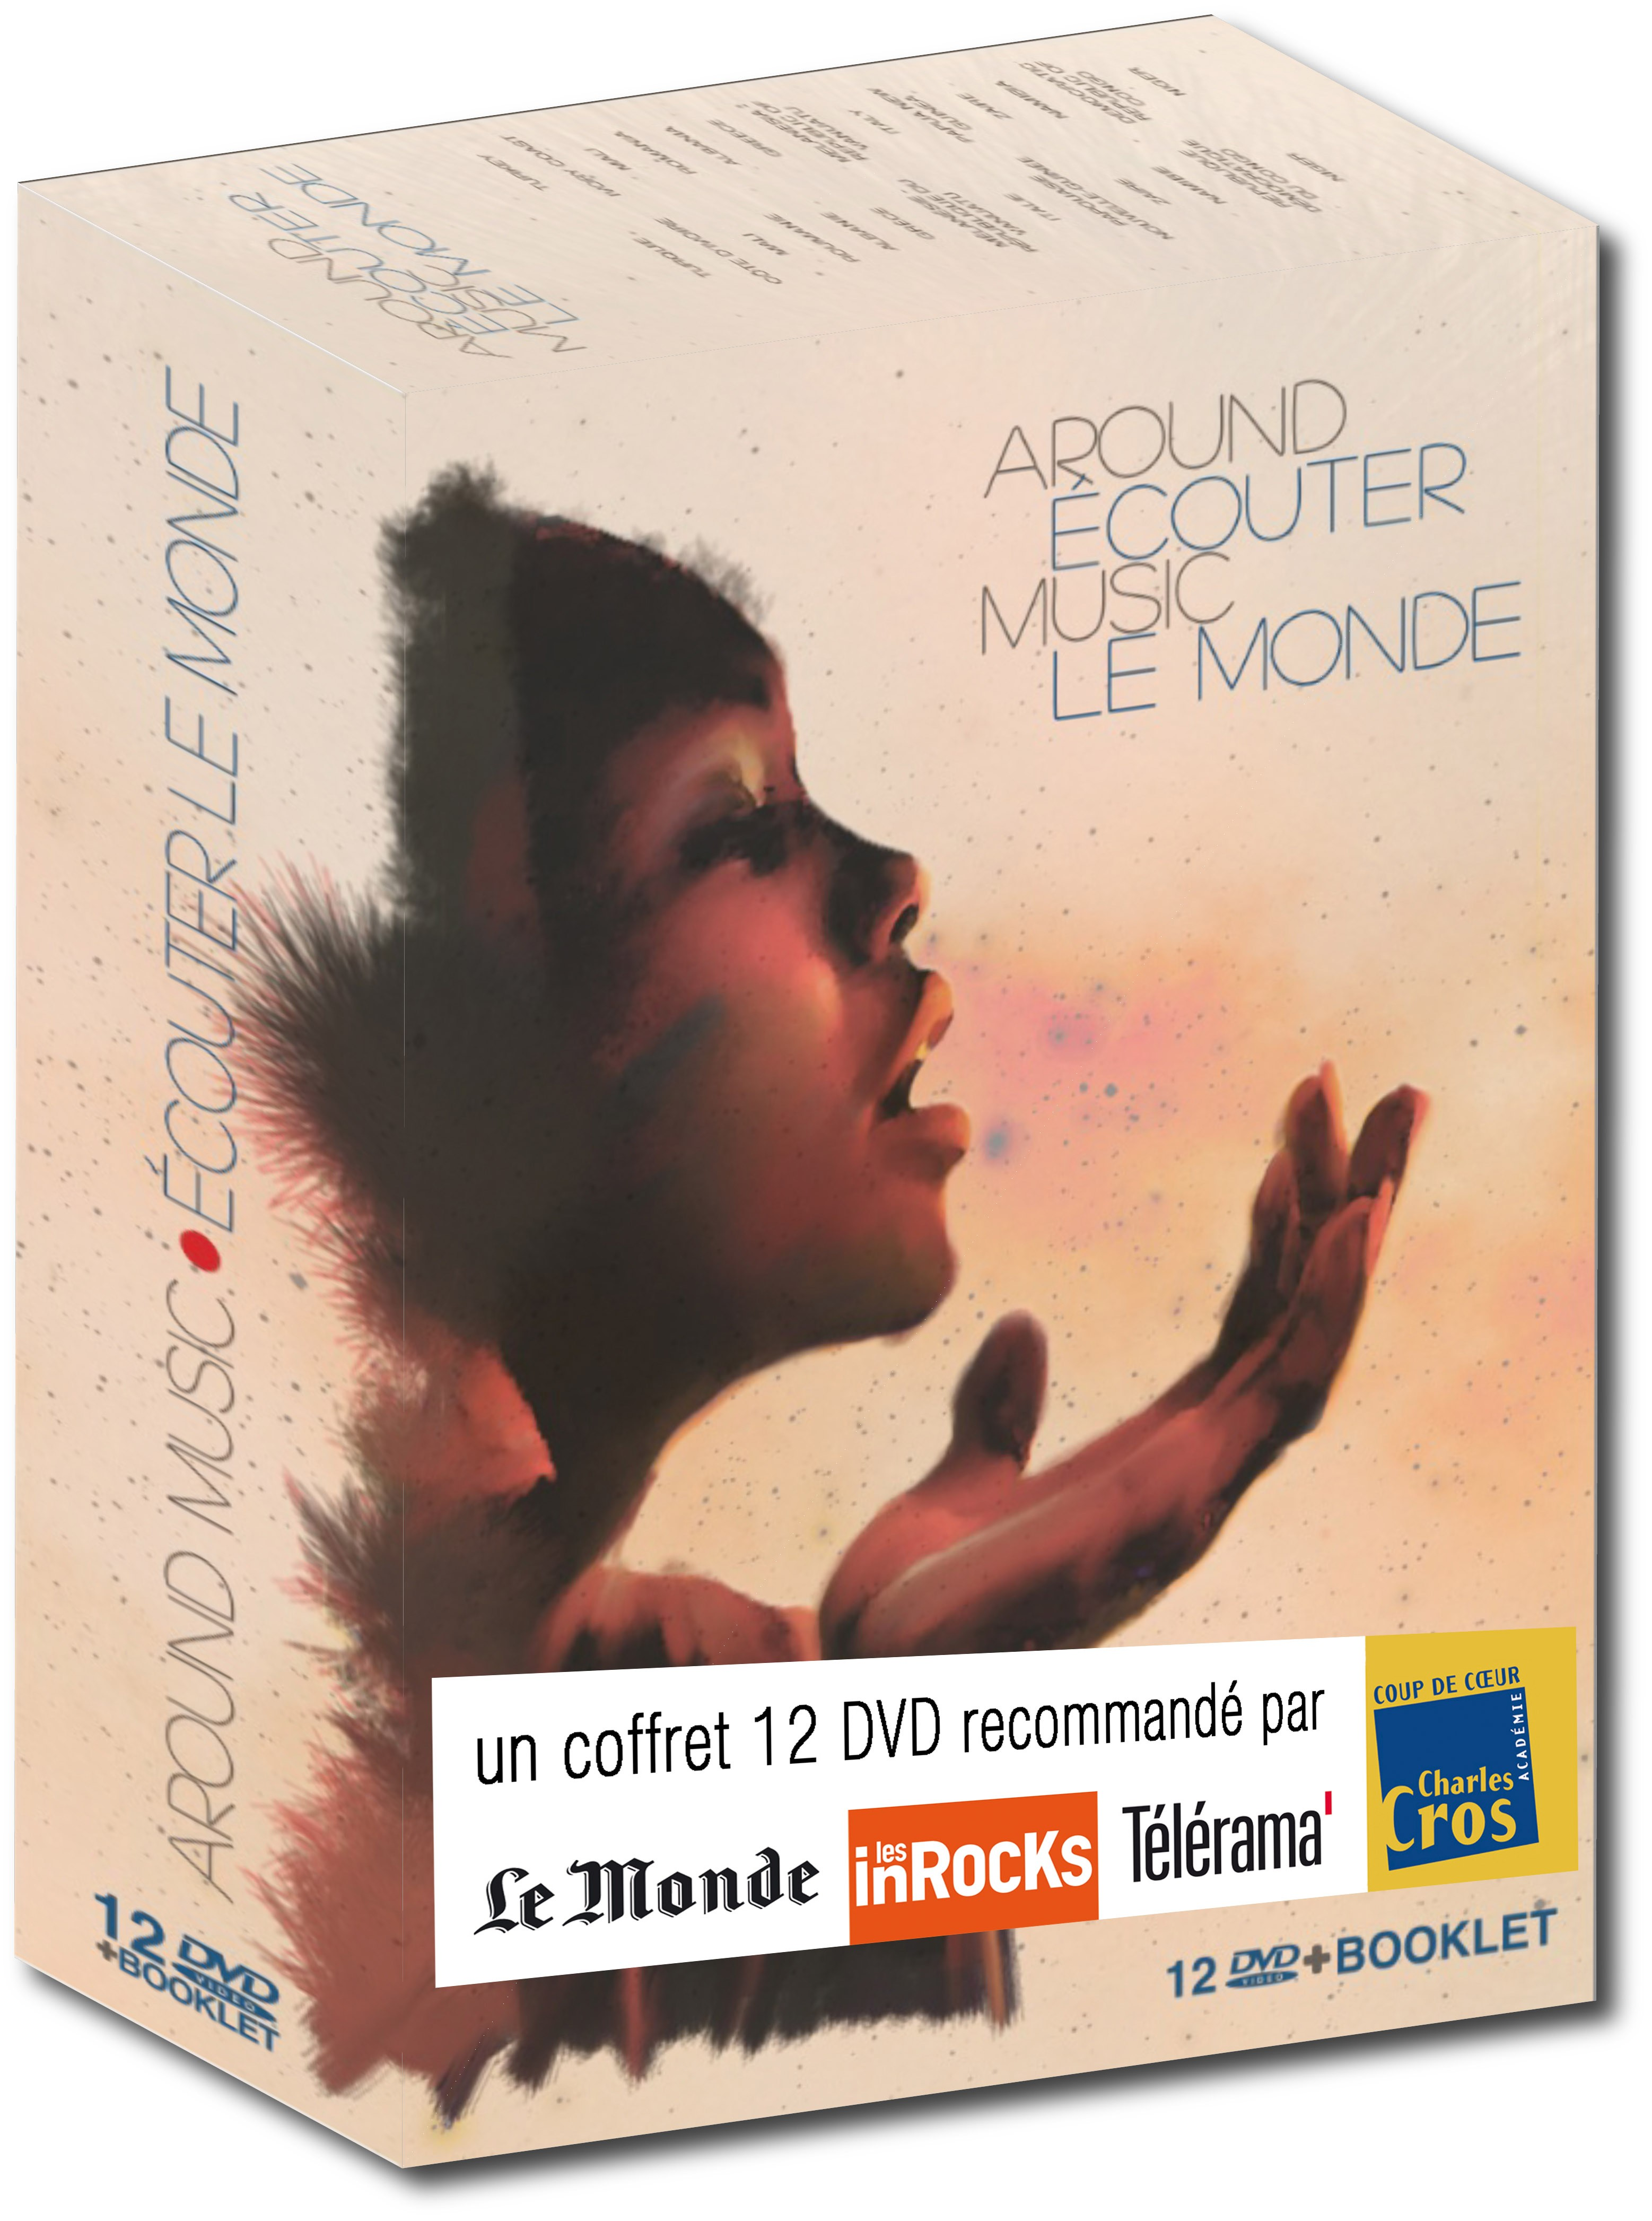 AROUND MUSIC, ECOUTER LE MONDE - COFFRET 12 DVD